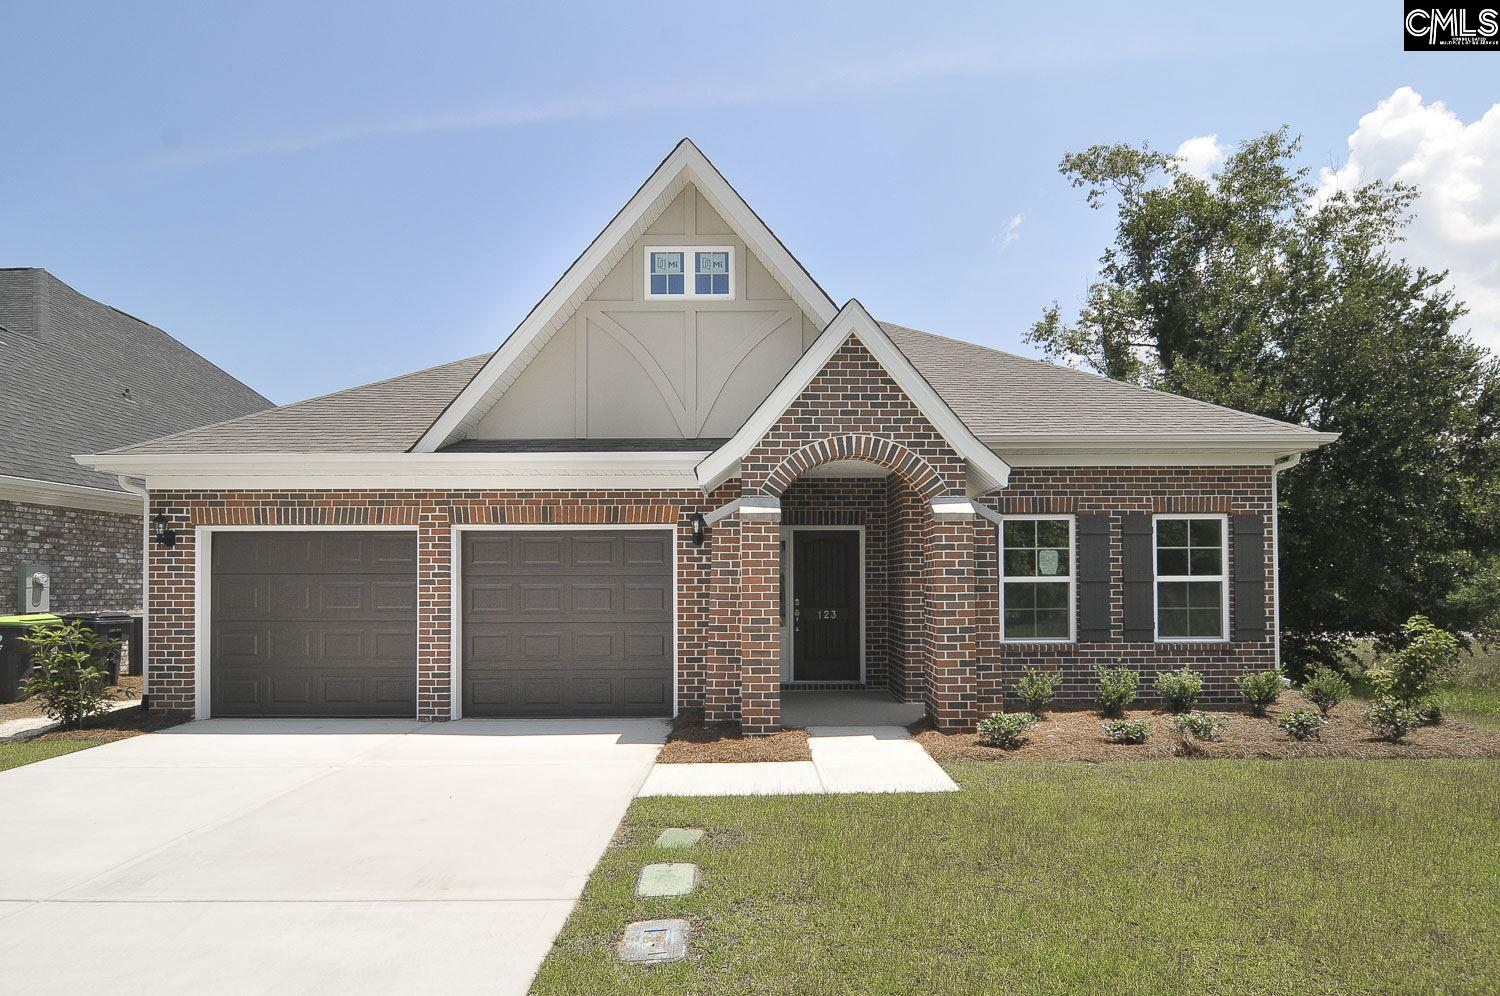 123 Cressingham #2 Lexington, SC 29072